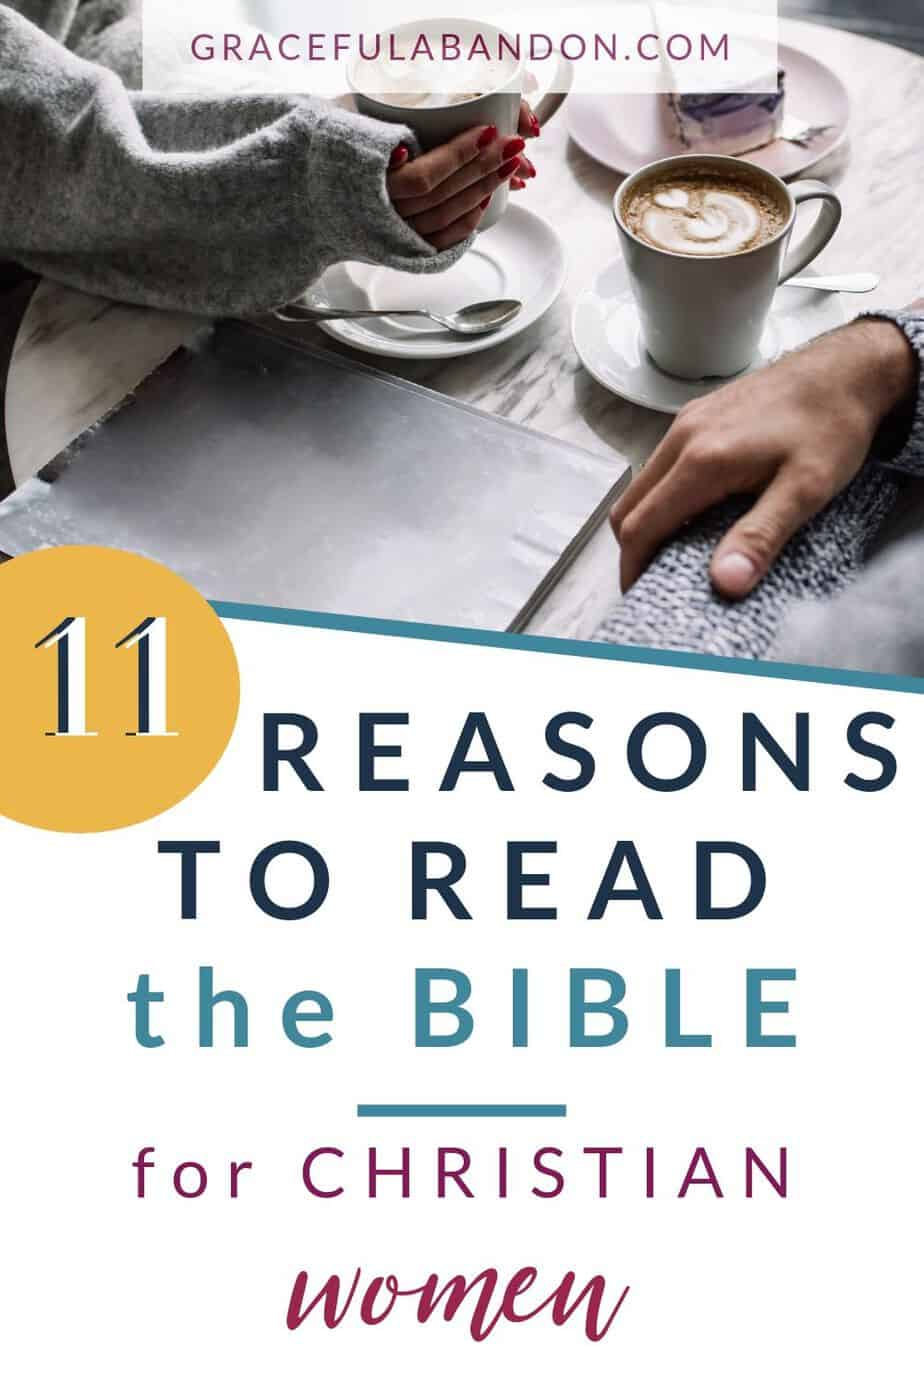 Picture of couple with coffees and Bible and words overlay: 11 reasons to read the Bible for Christian women